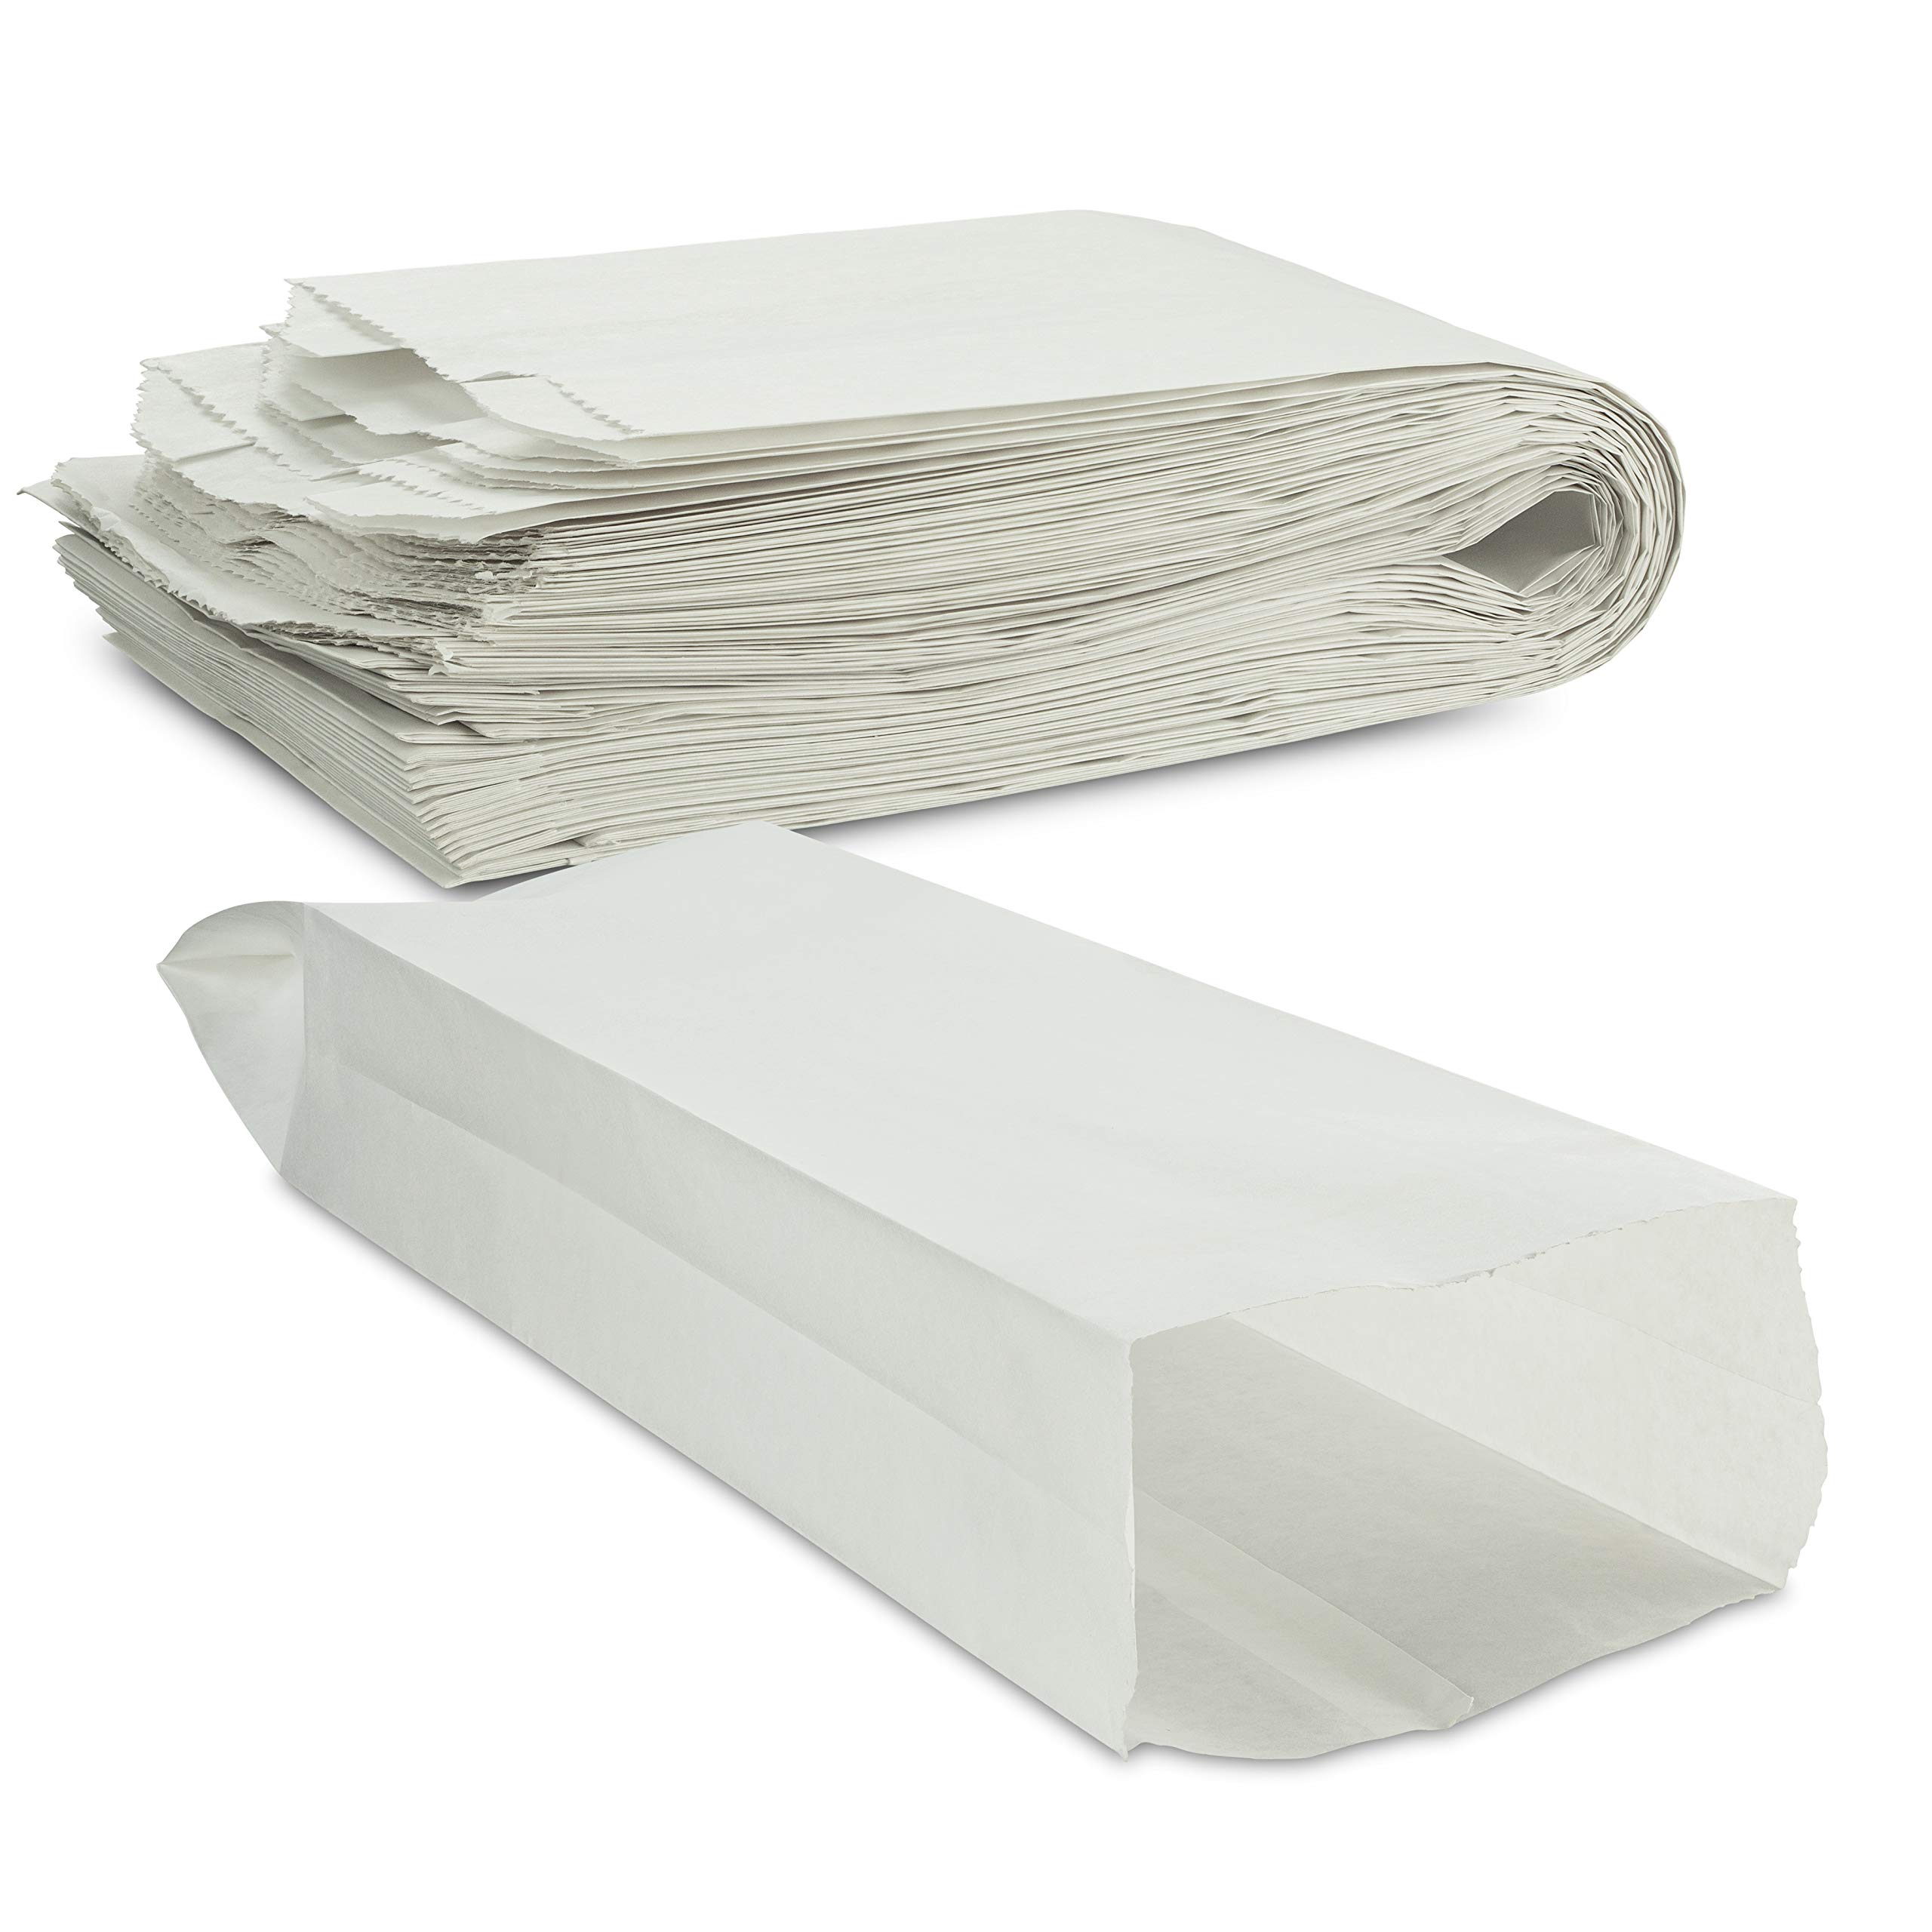 """Plain White Paper Bread Bag 5 1/4"""" x 3 1/4"""" x 18"""" Keep Bread Fresh by MT Products - (50 Pieces)"""